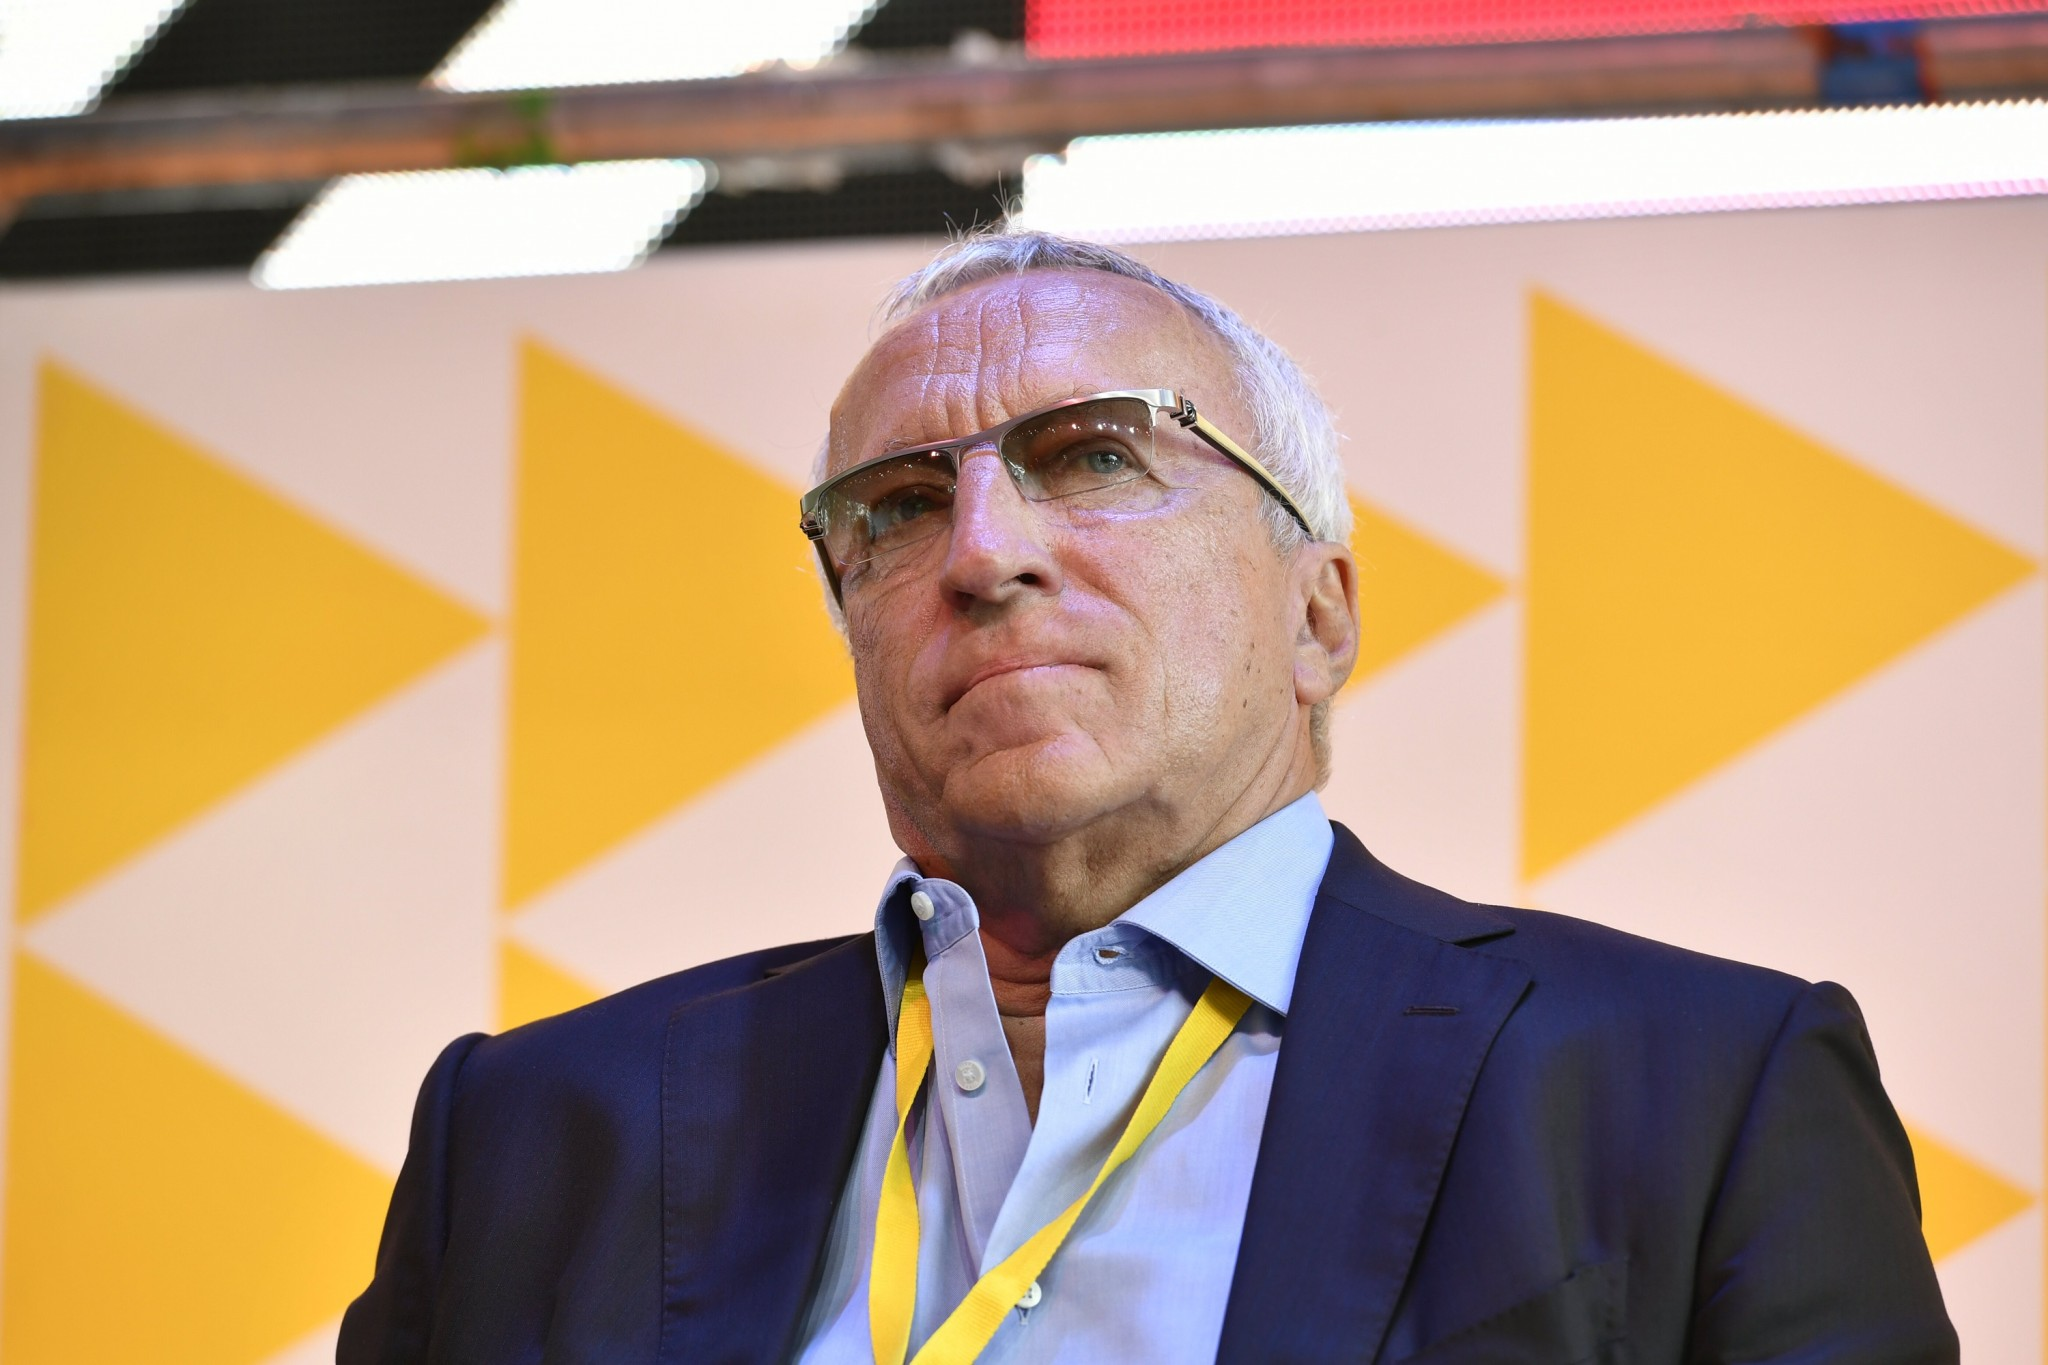 Skoltech President Alexander Kuleshov pictured during a panel at the Skolkovo Startup Village on universities of the future.